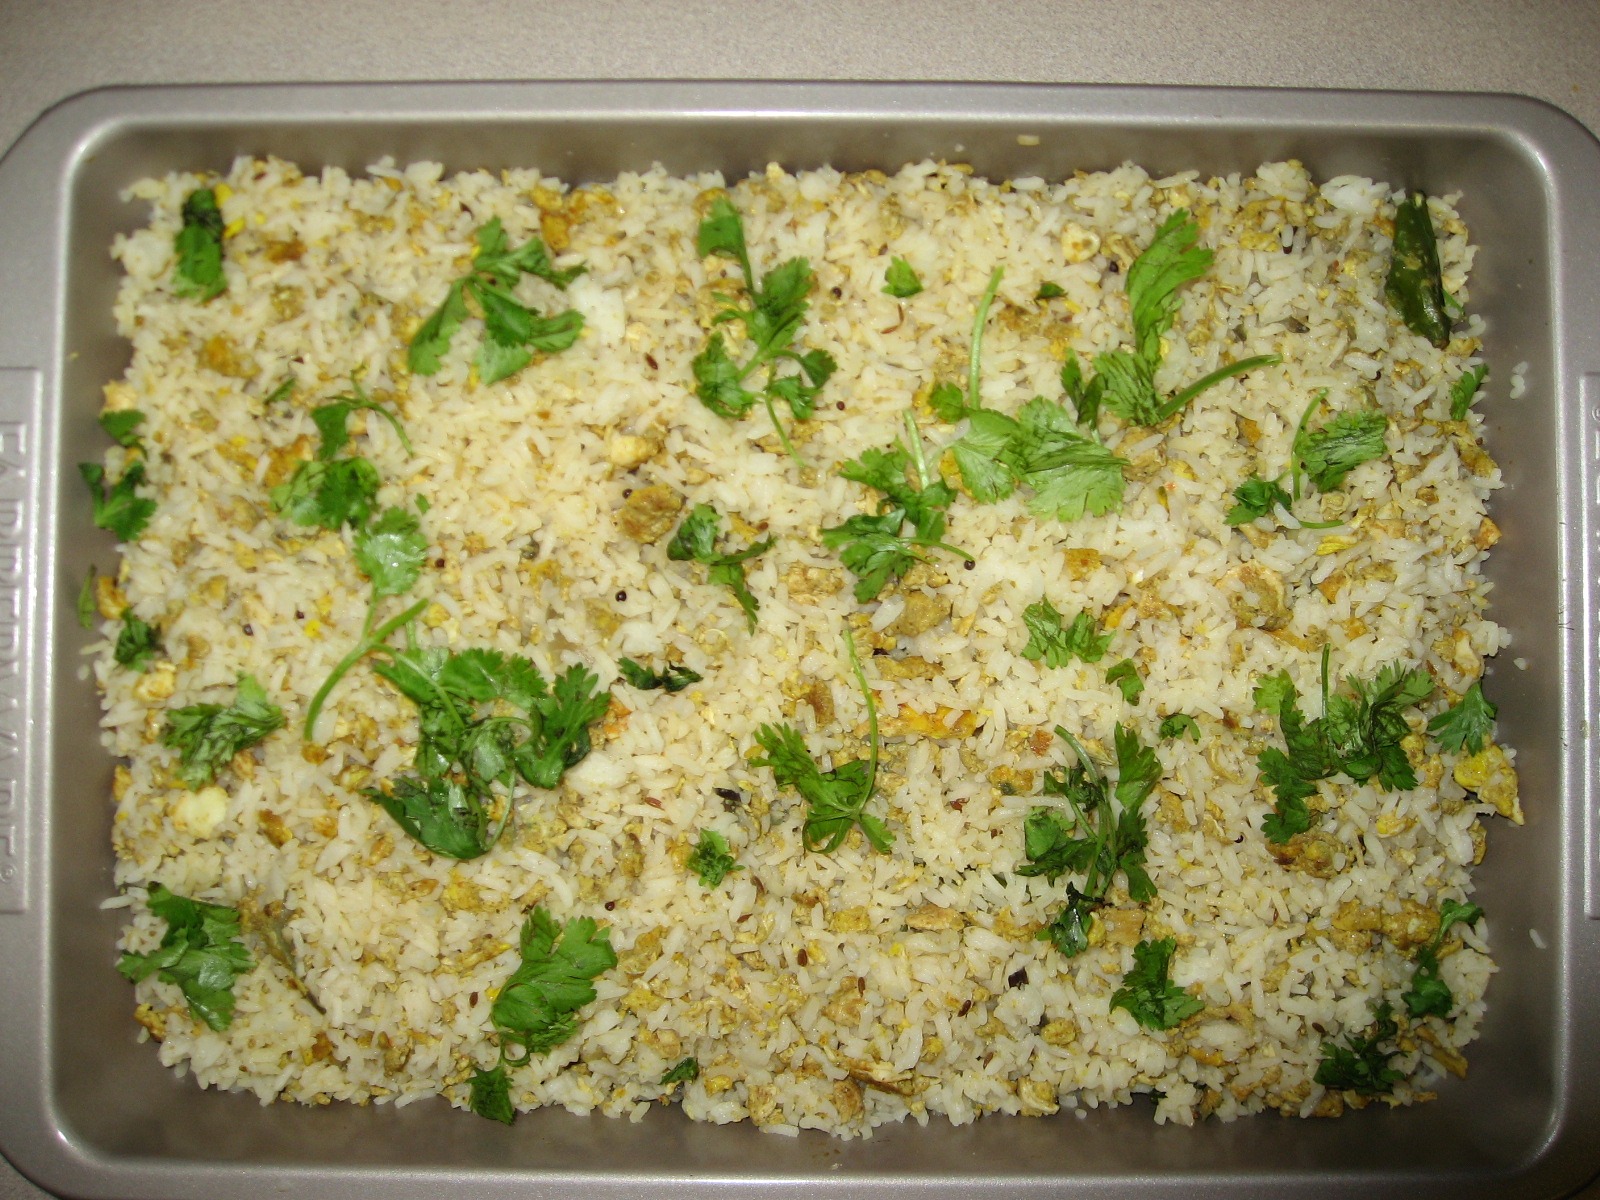 Fried rice using dry rice